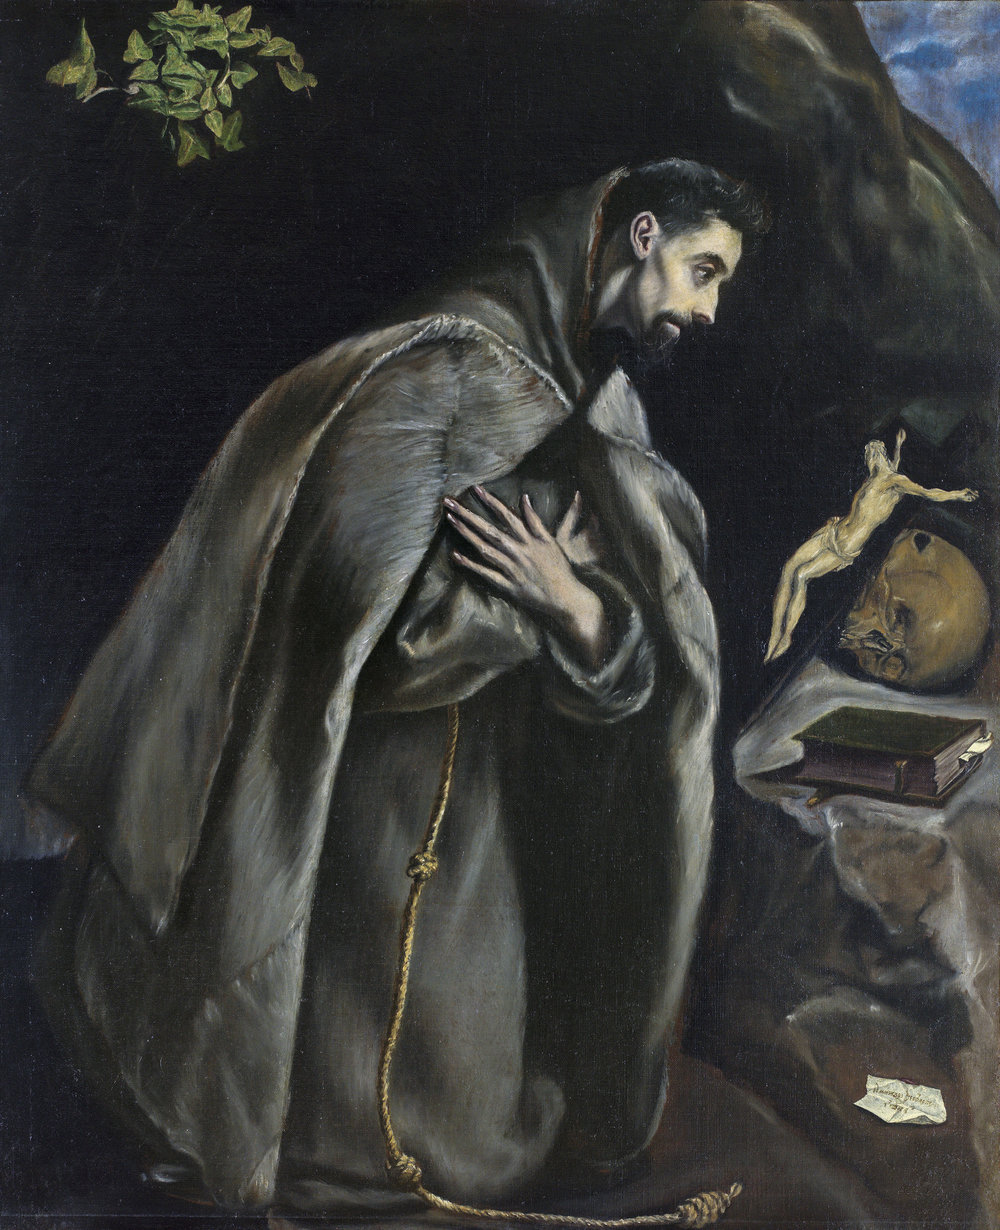 El_Greco_St_Francis_in_Prayer_before_the_Crucifix.jpg